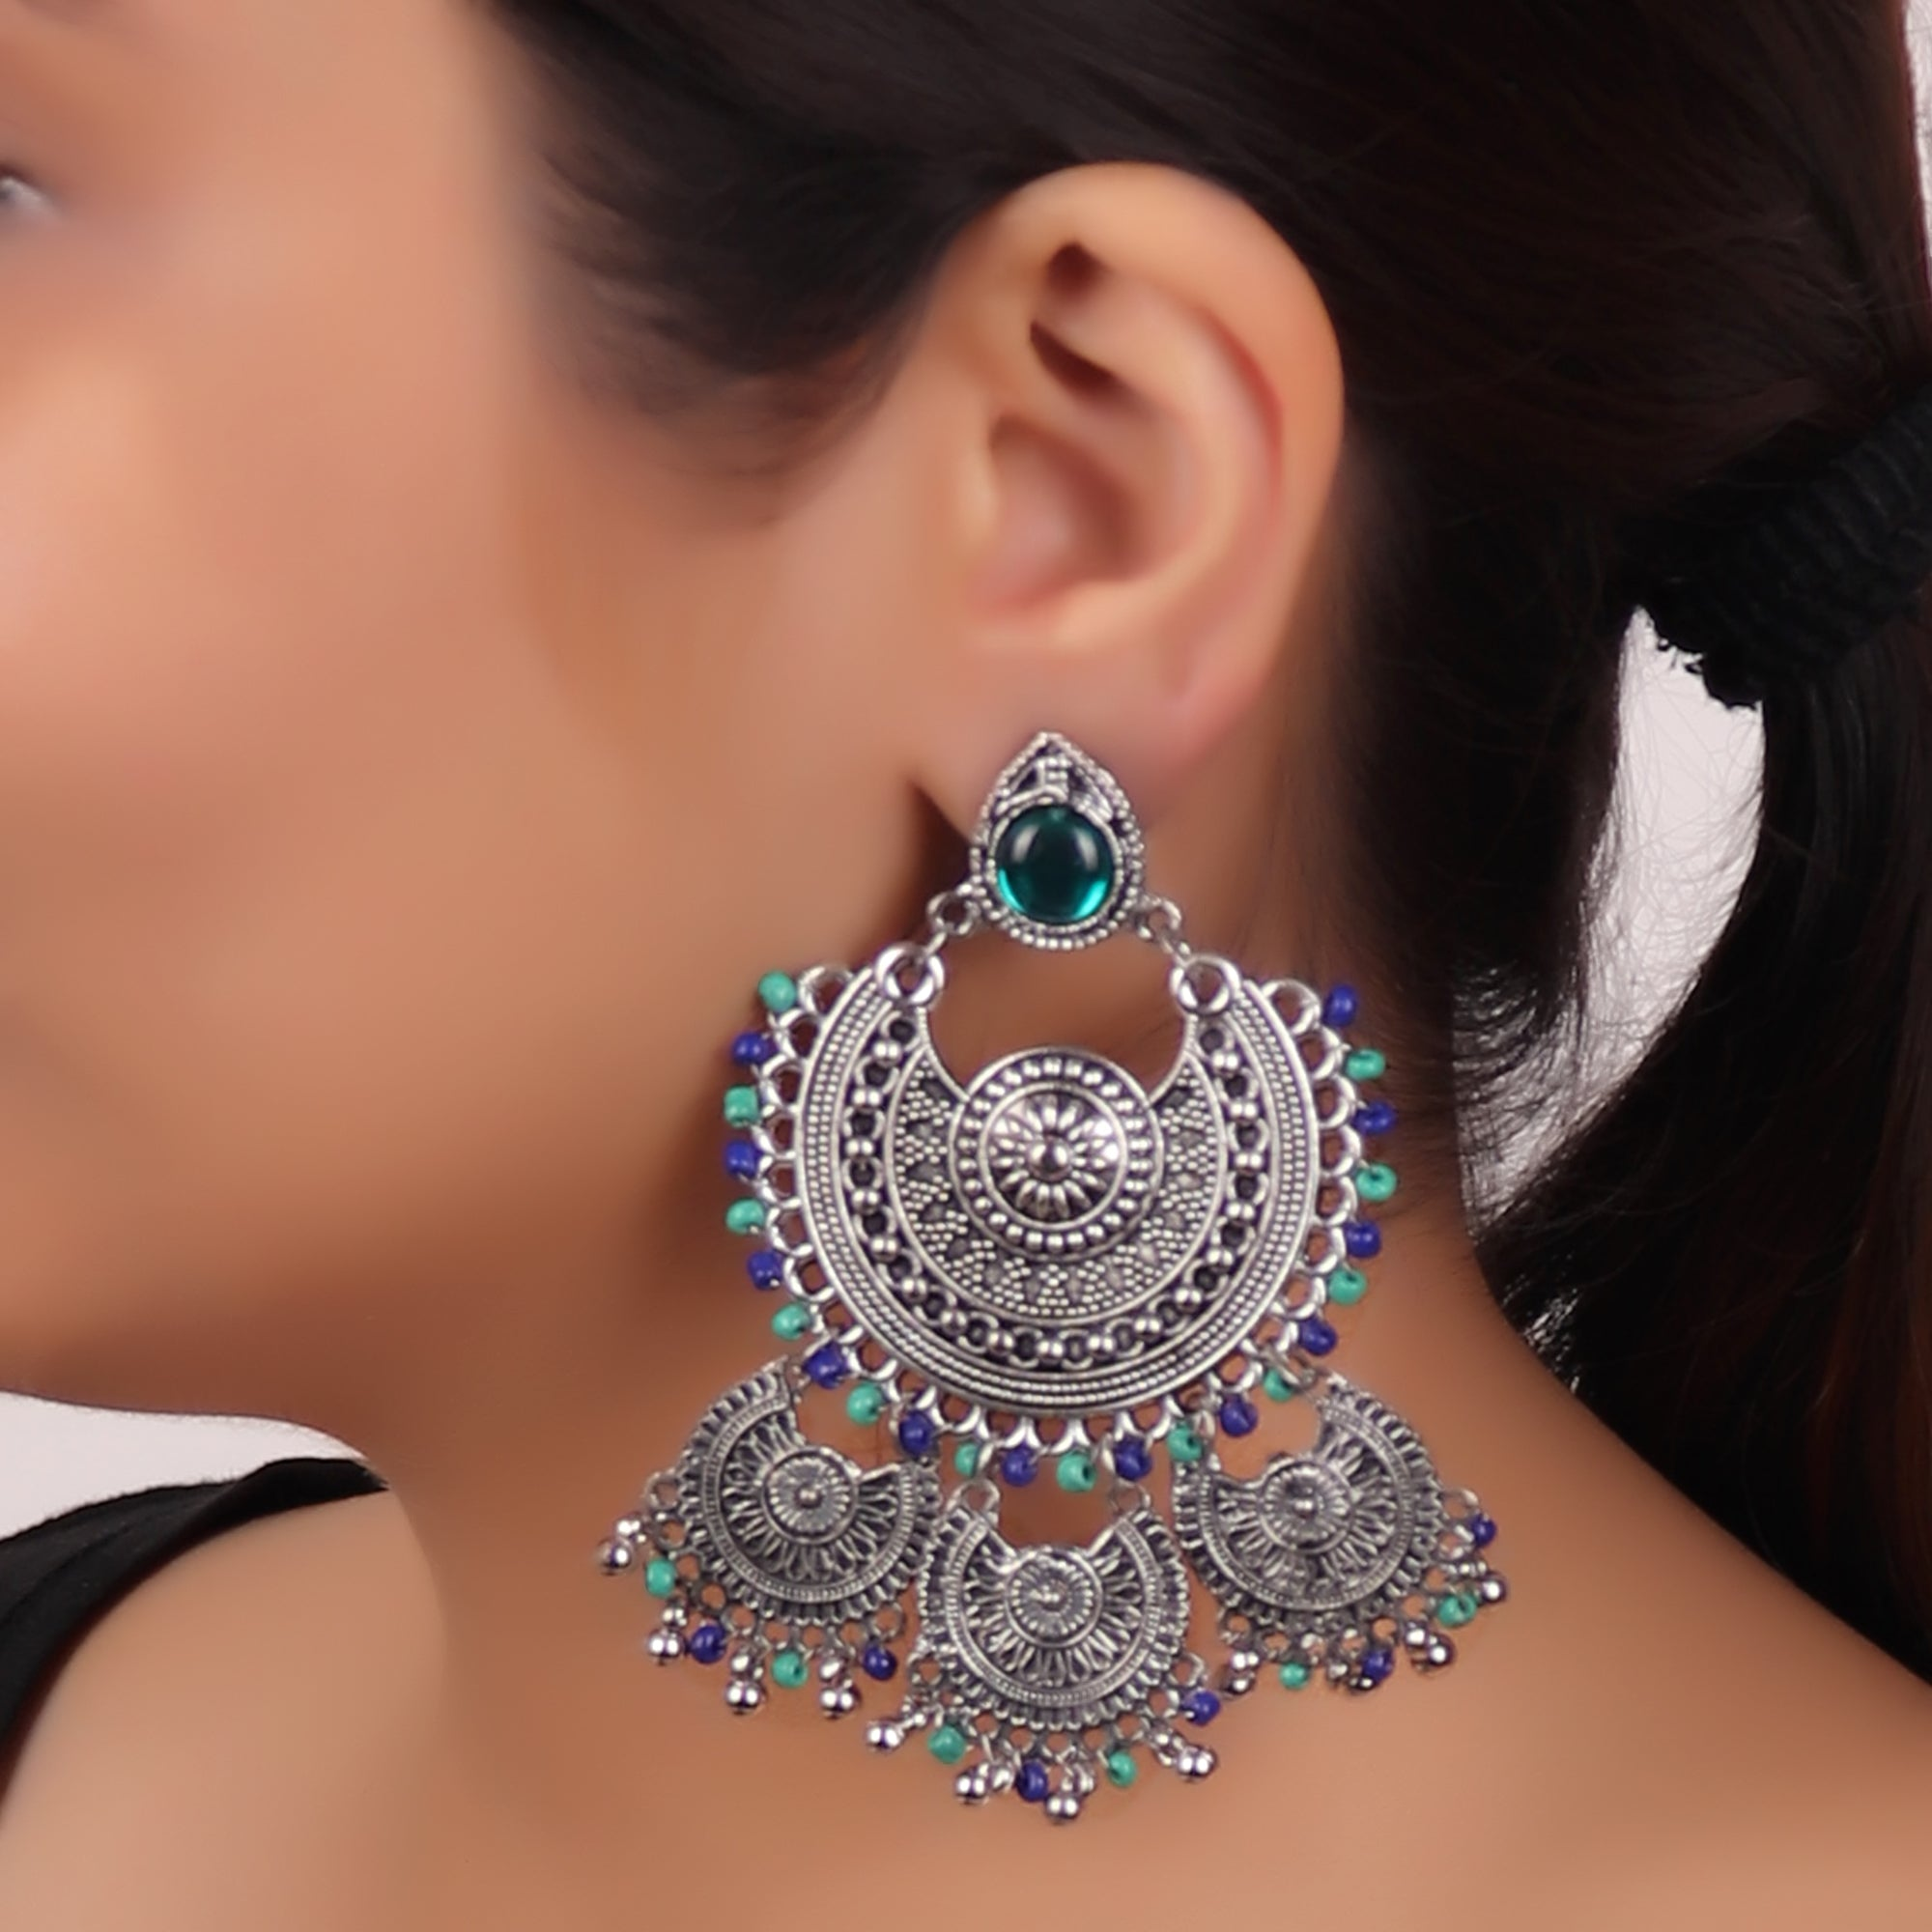 Earrings,The Galaxy Earring in Green & Blue - Cippele Multi Store